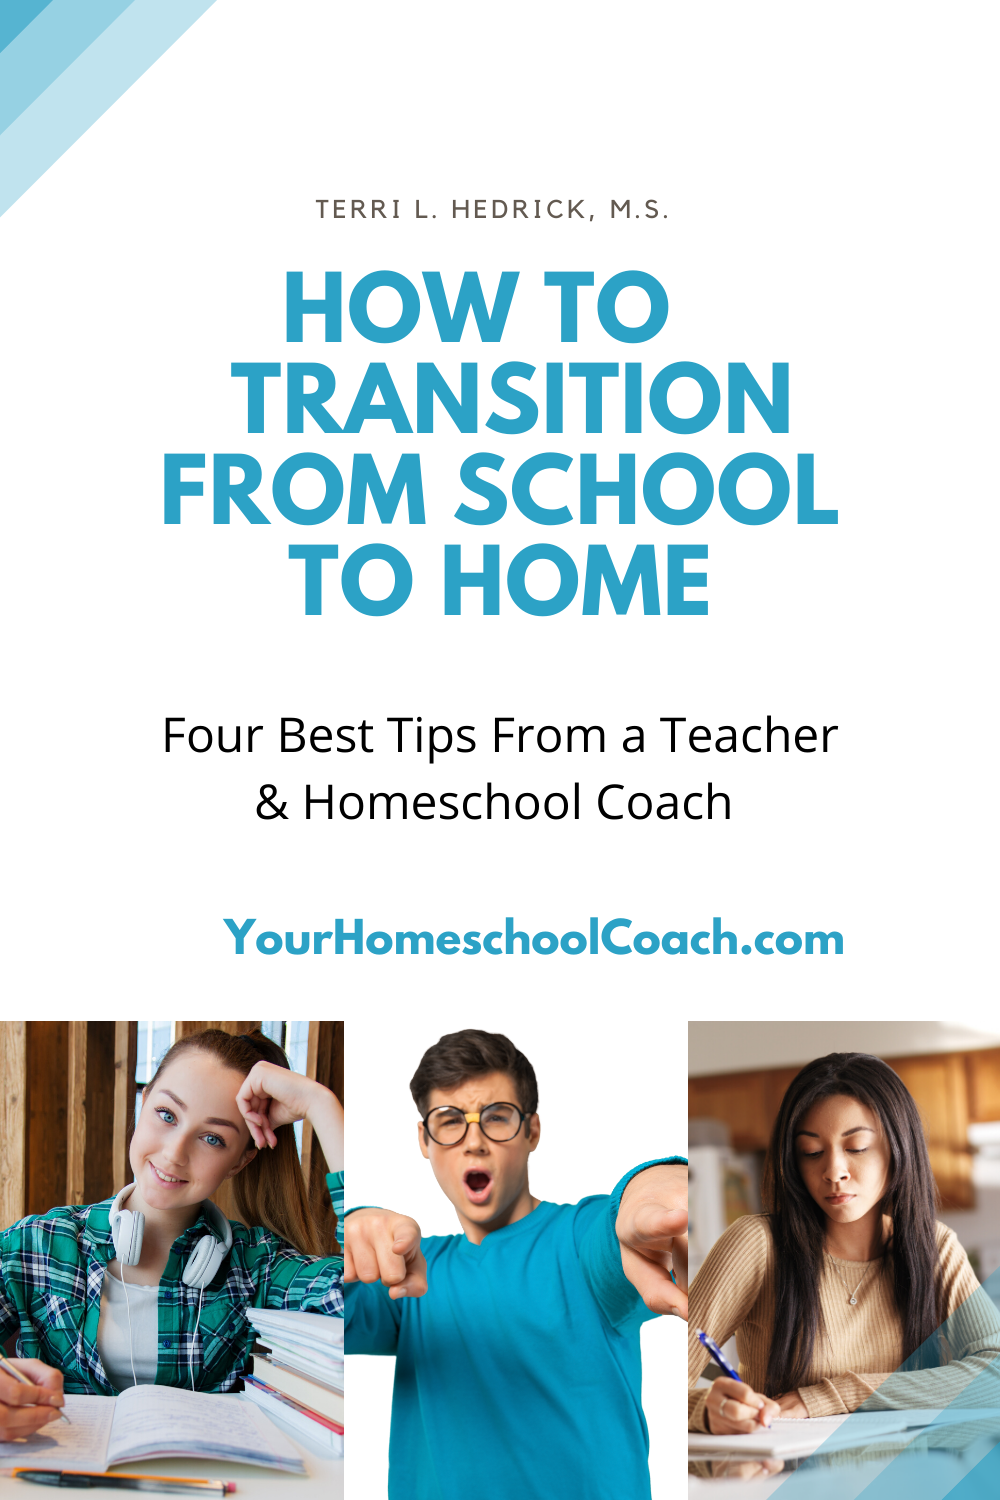 How to transition from school to home